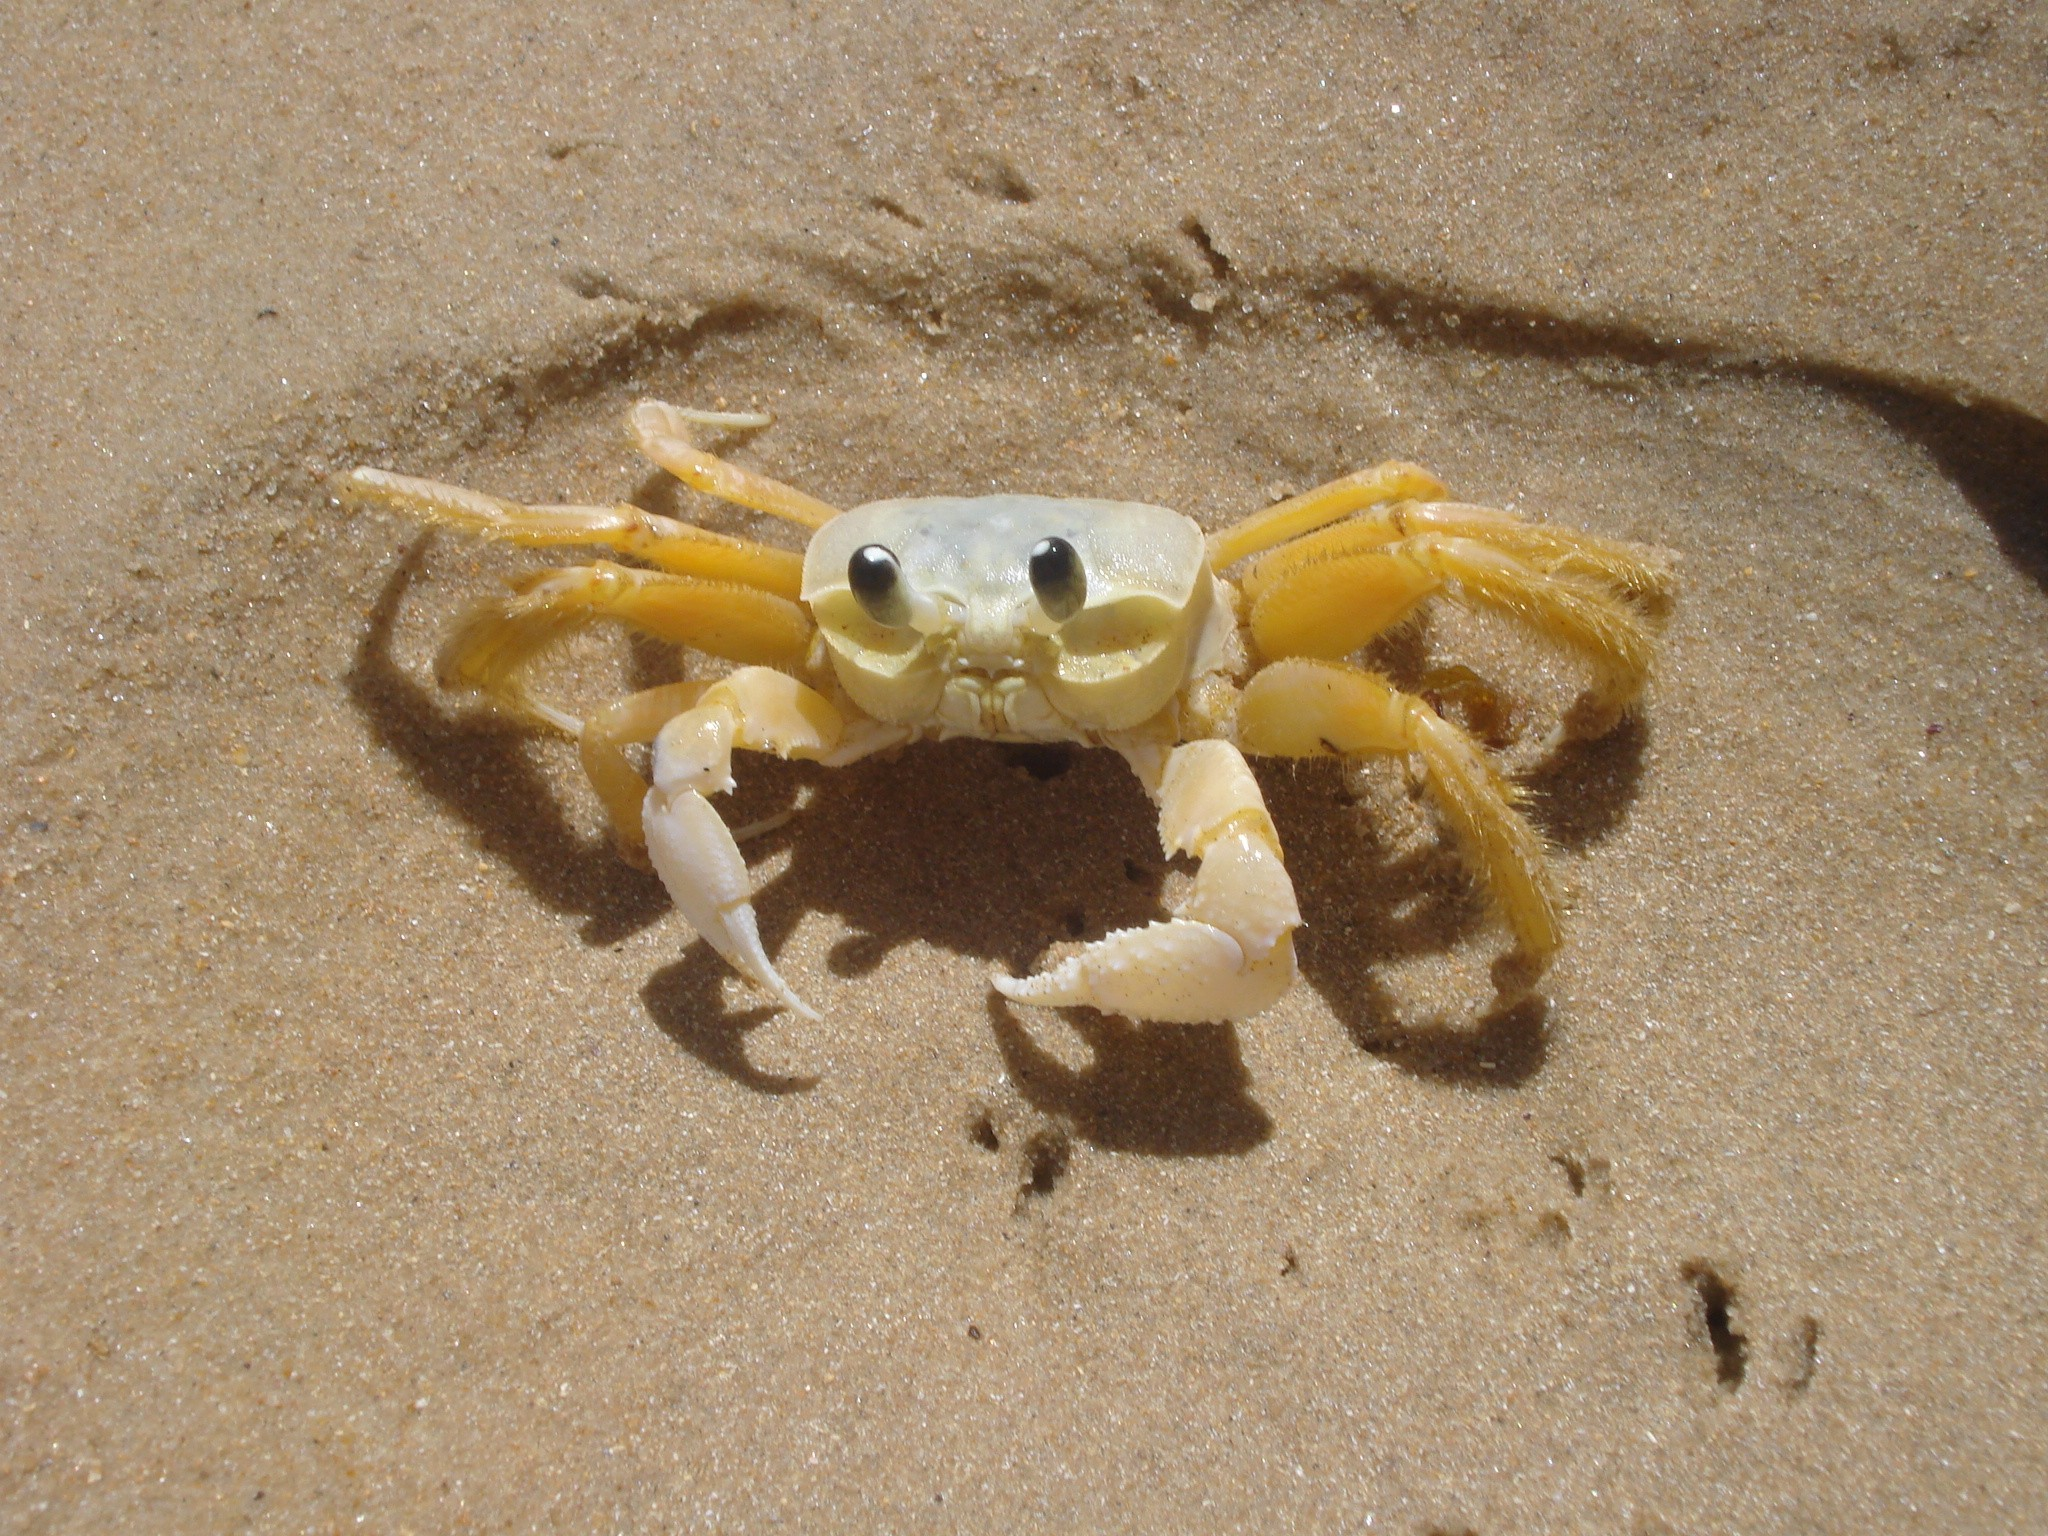 sand summer crabs Beaches HD Wallpaper